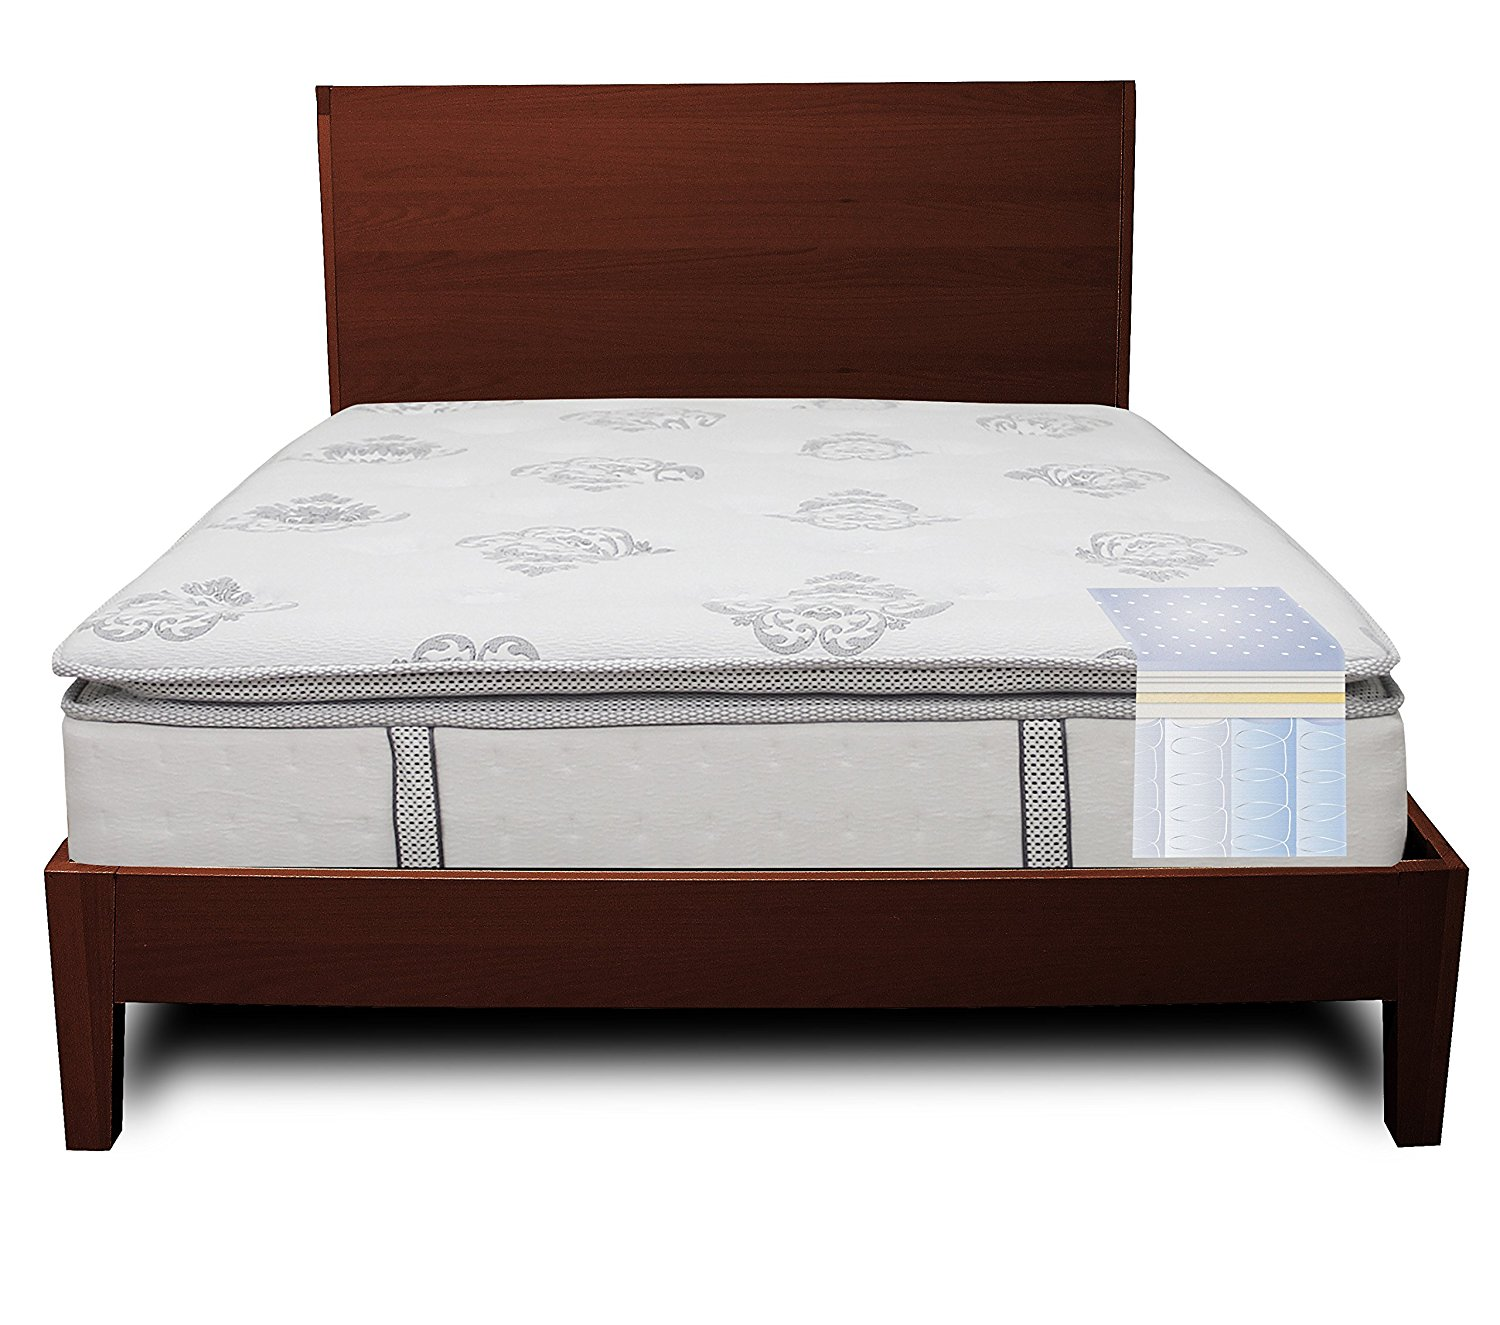 Classic Brands Innerspring Mattress